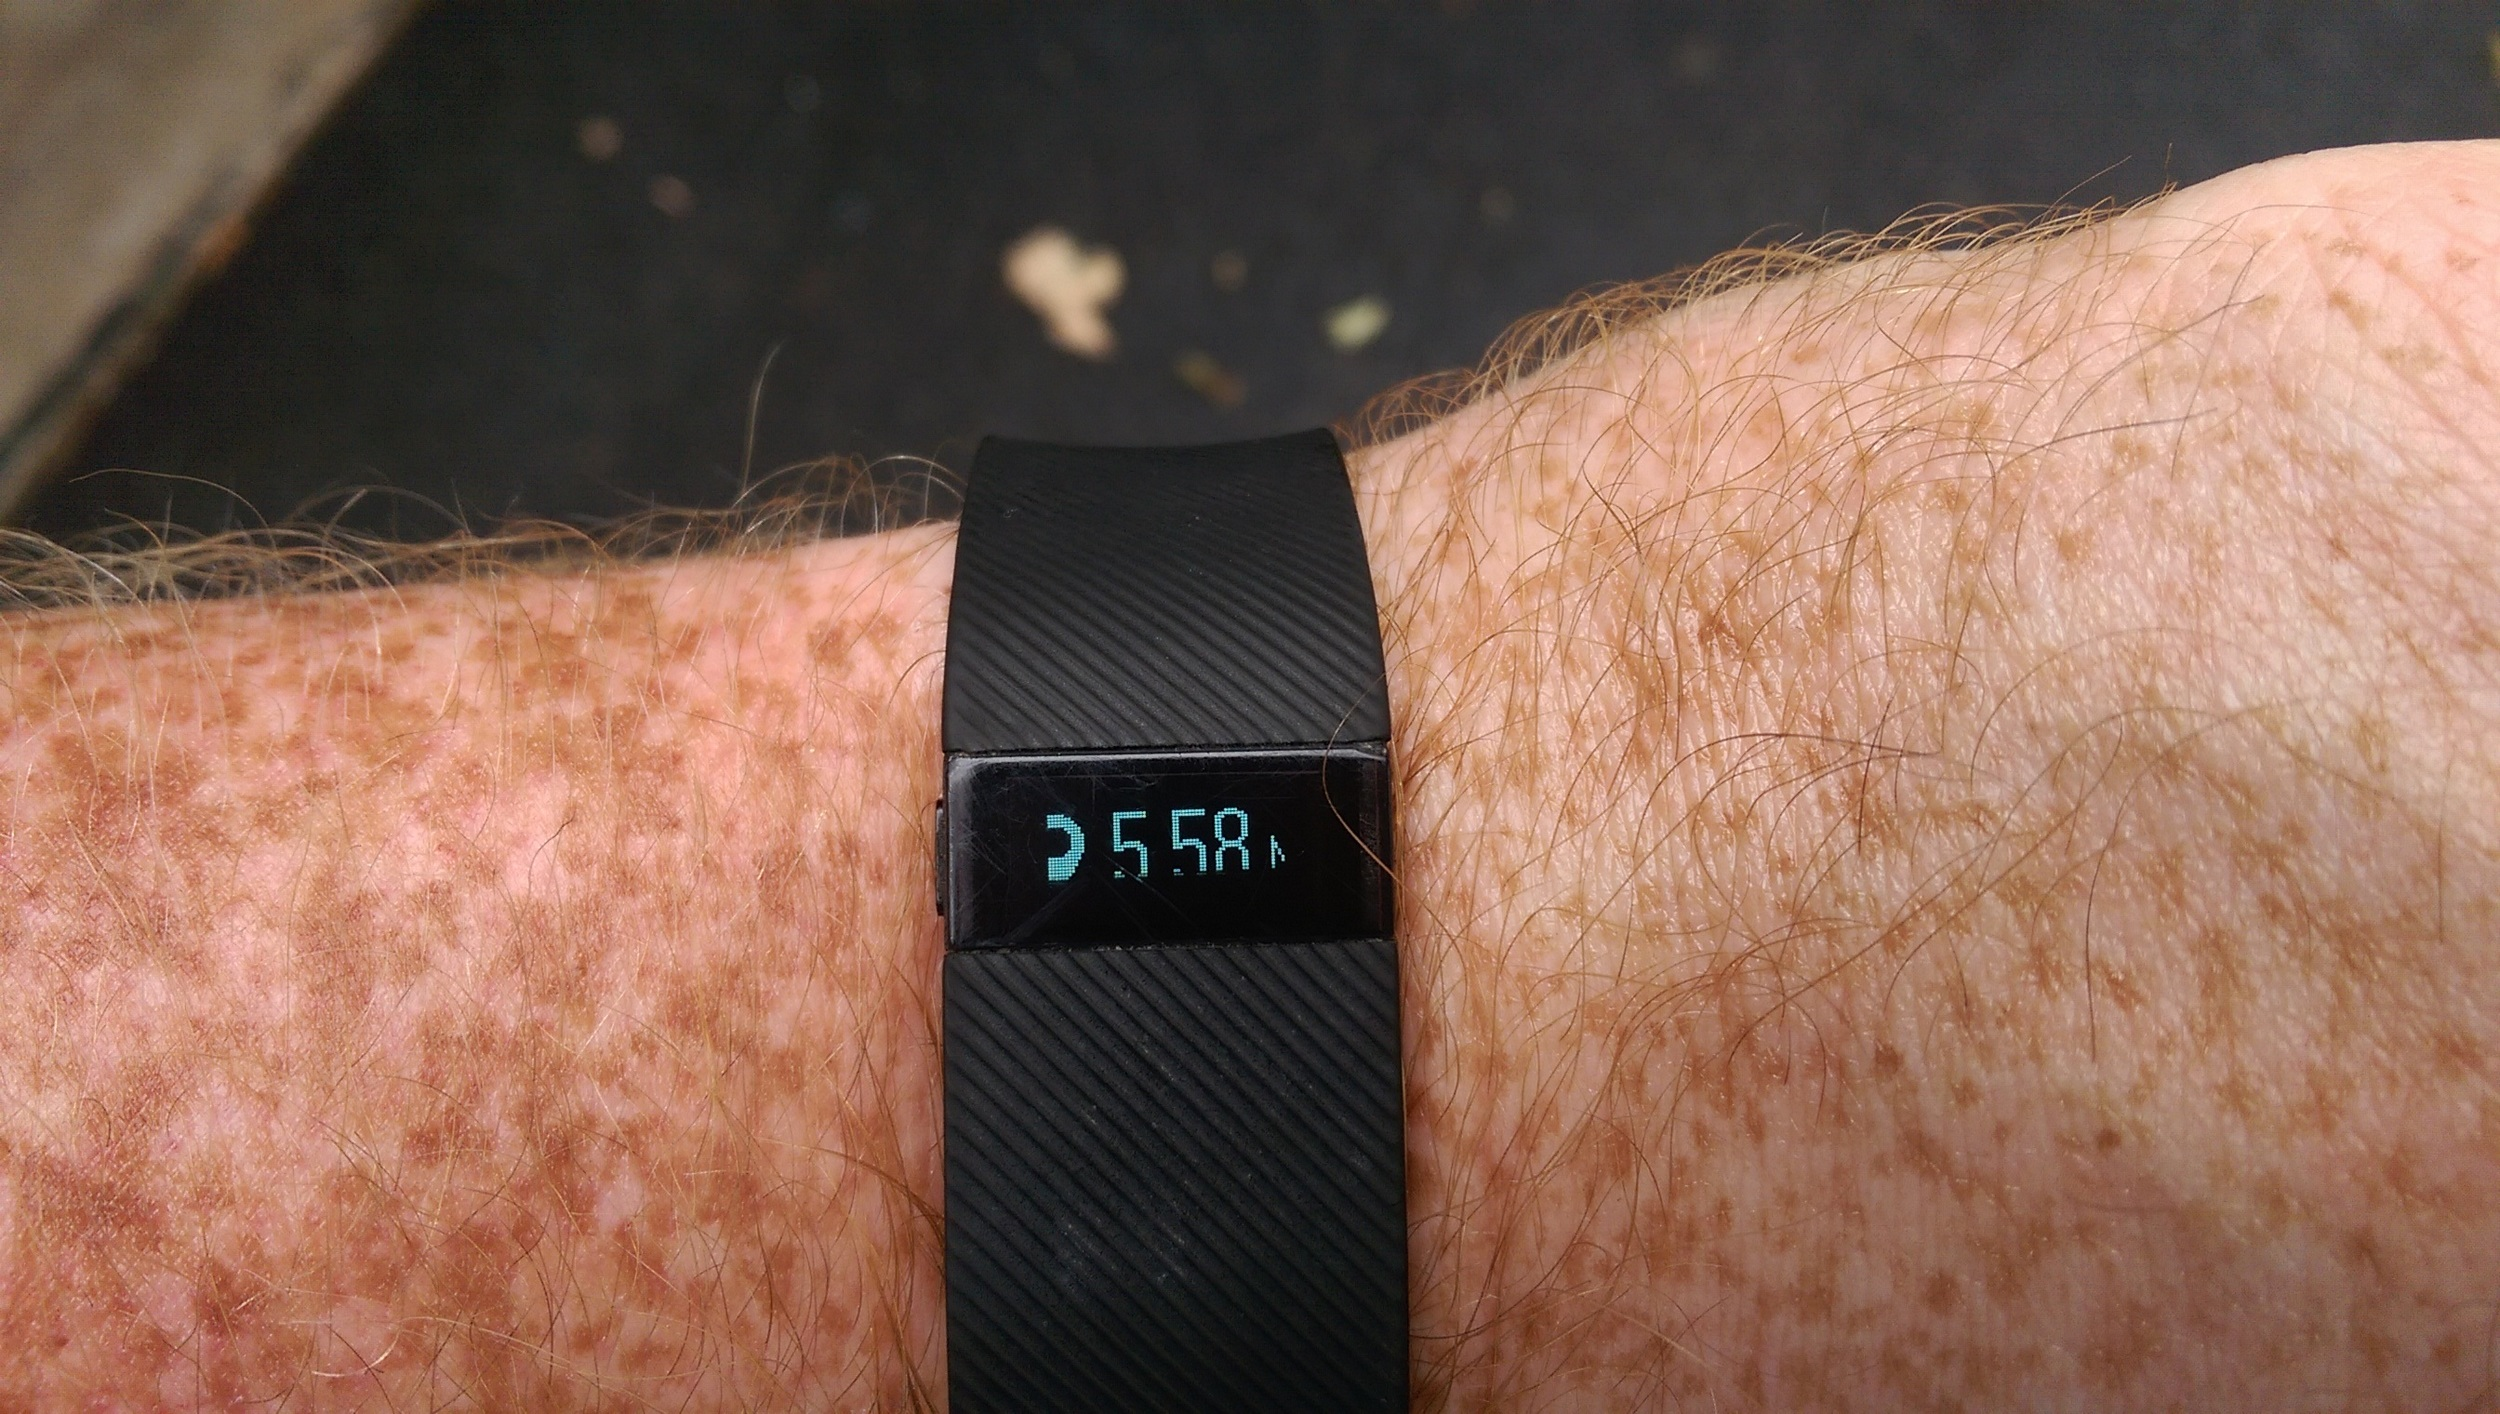 Fitbit proof that I ran 5.58 miles and Fitbit is never wrong.